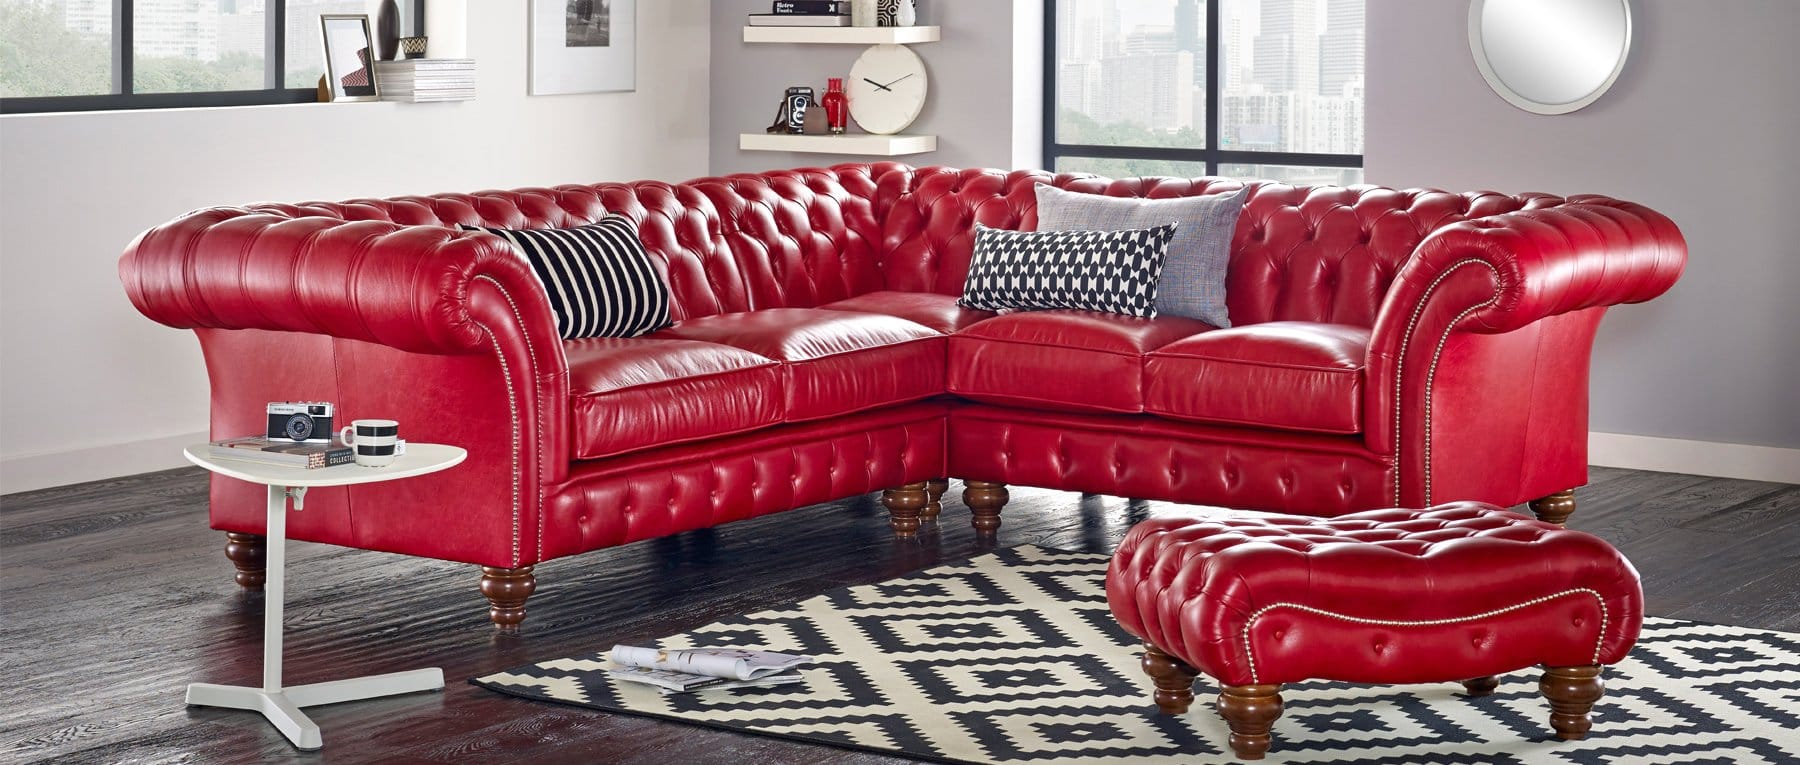 Over 50 sofa designs